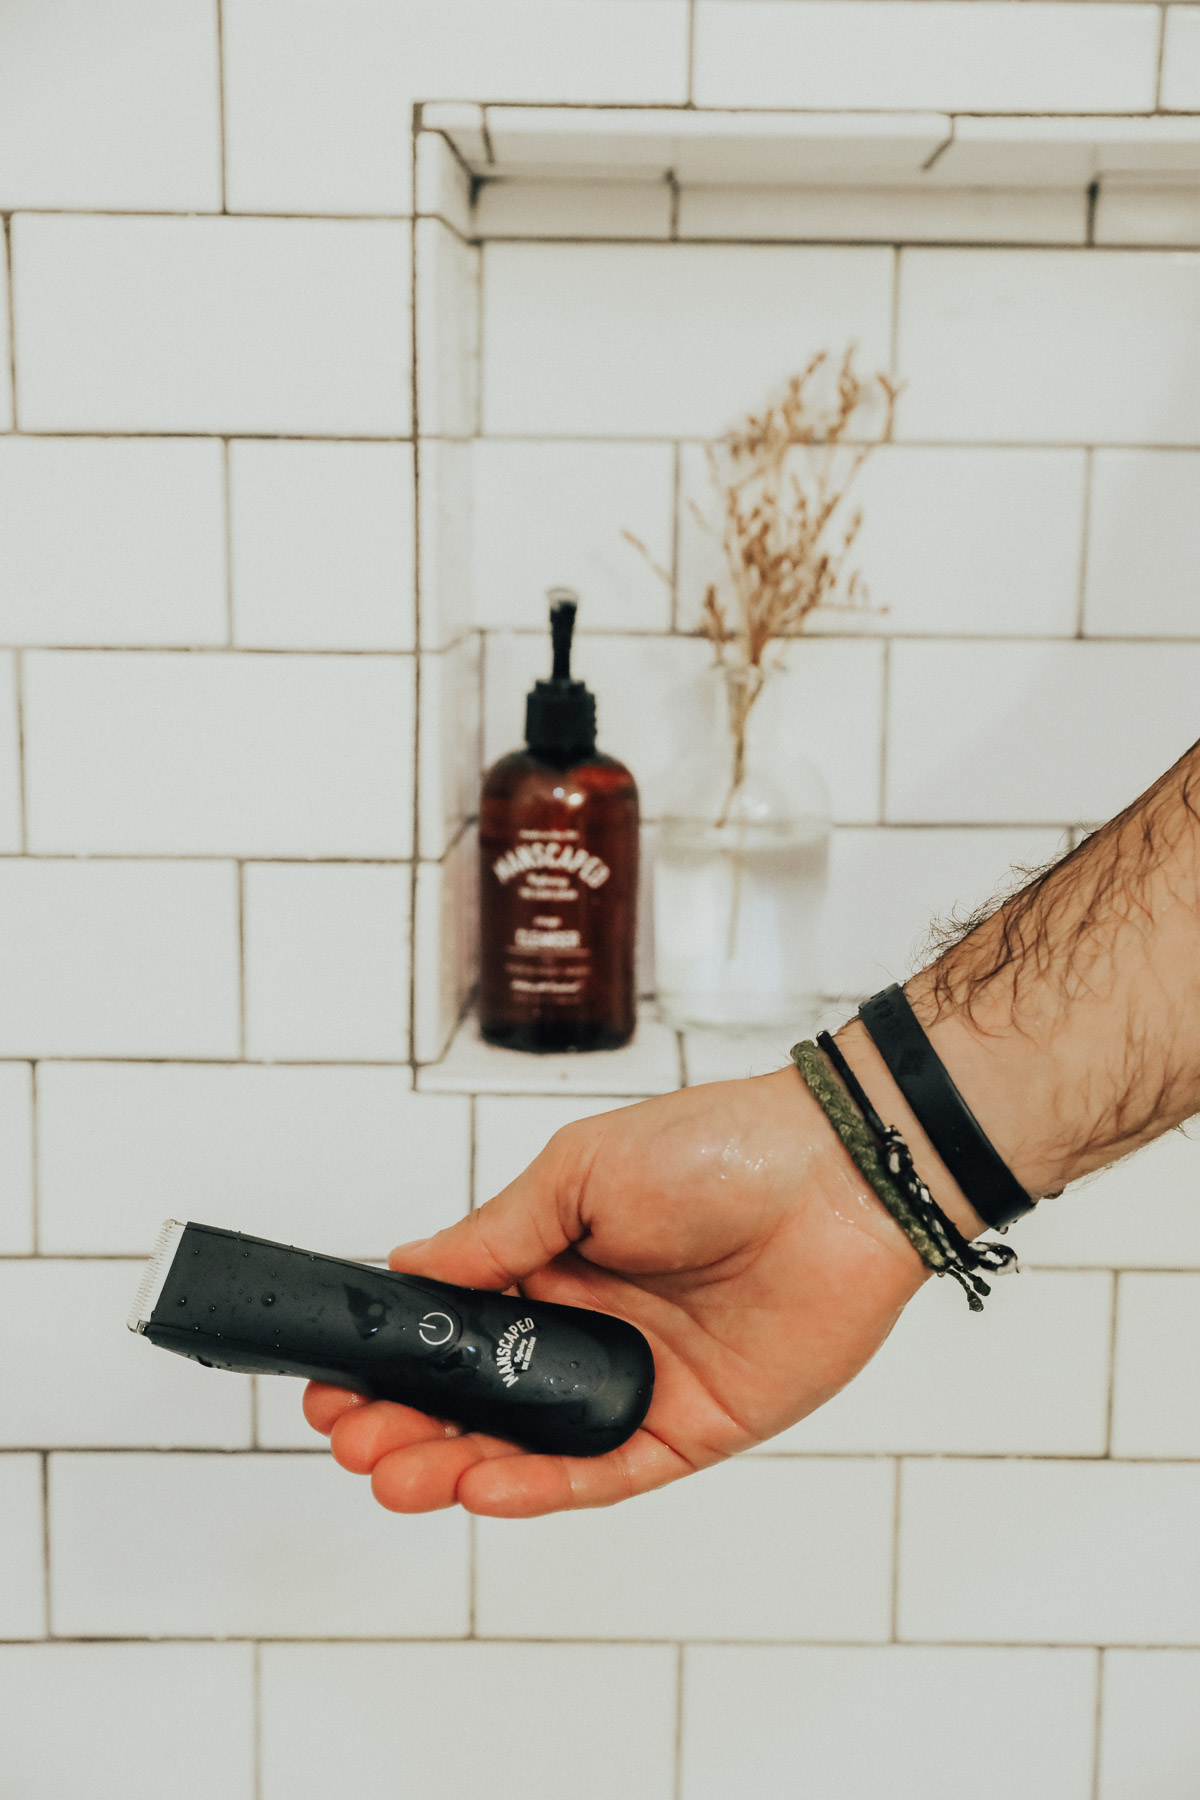 manscaped men's grooming self-care products